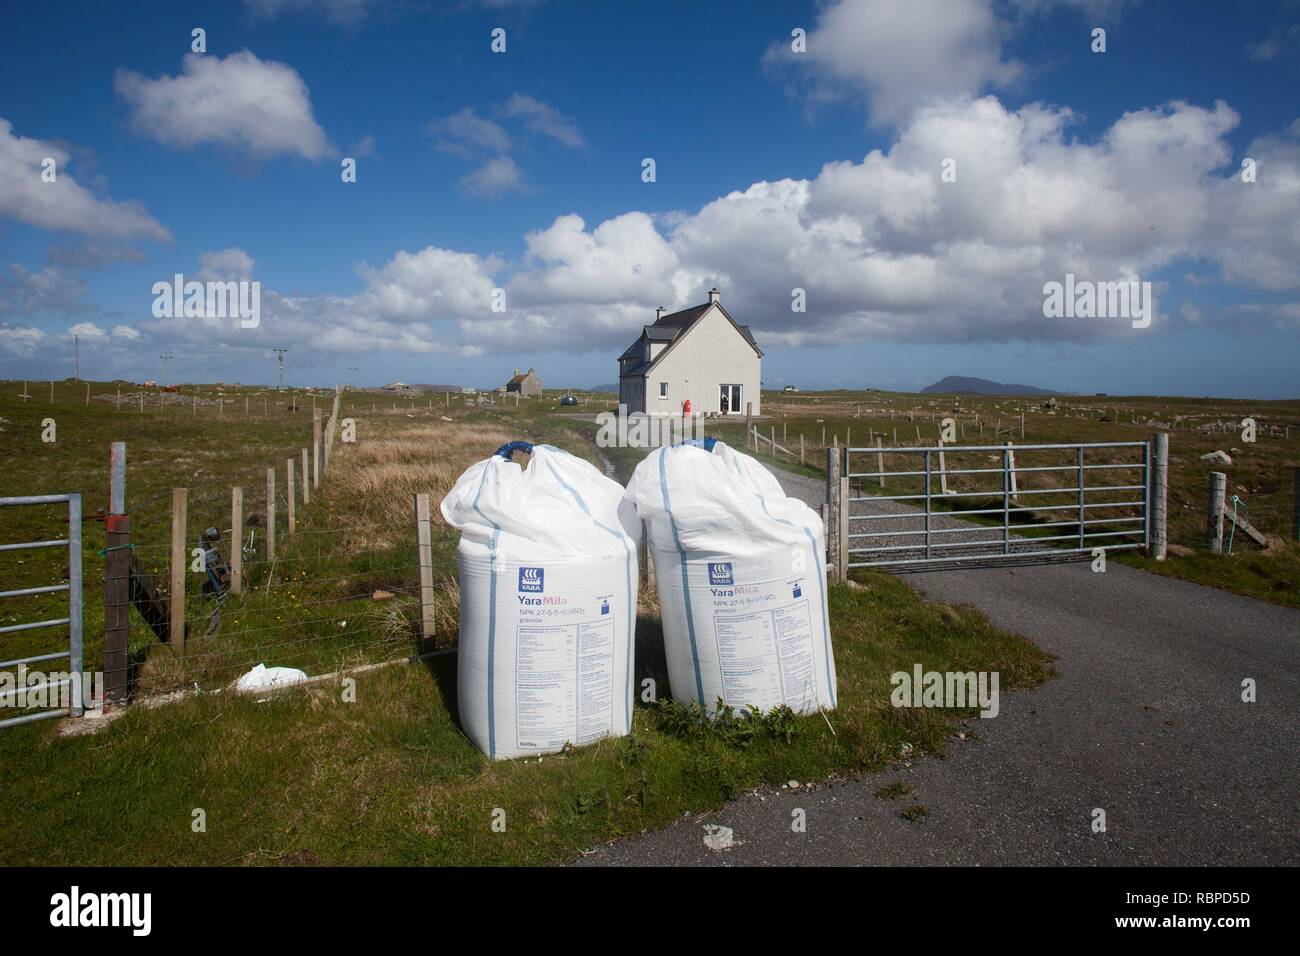 Nitrogen fertilzer in bags , ready for application to machir , coastal grazing . Threat to wildlife diversity of threatened coastal habitat. Necessaary for maintainance of low level subsidized agriculture in remote OuterHebrides - Stock Image